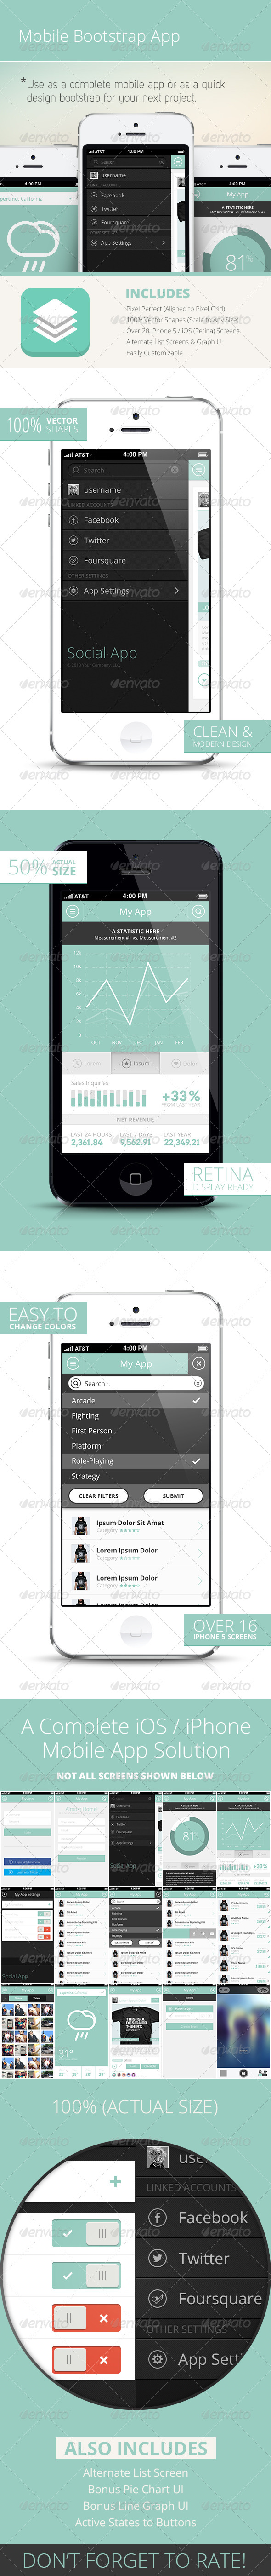 Bootstrap Mobile Phone UI / App - User Interfaces Web Elements